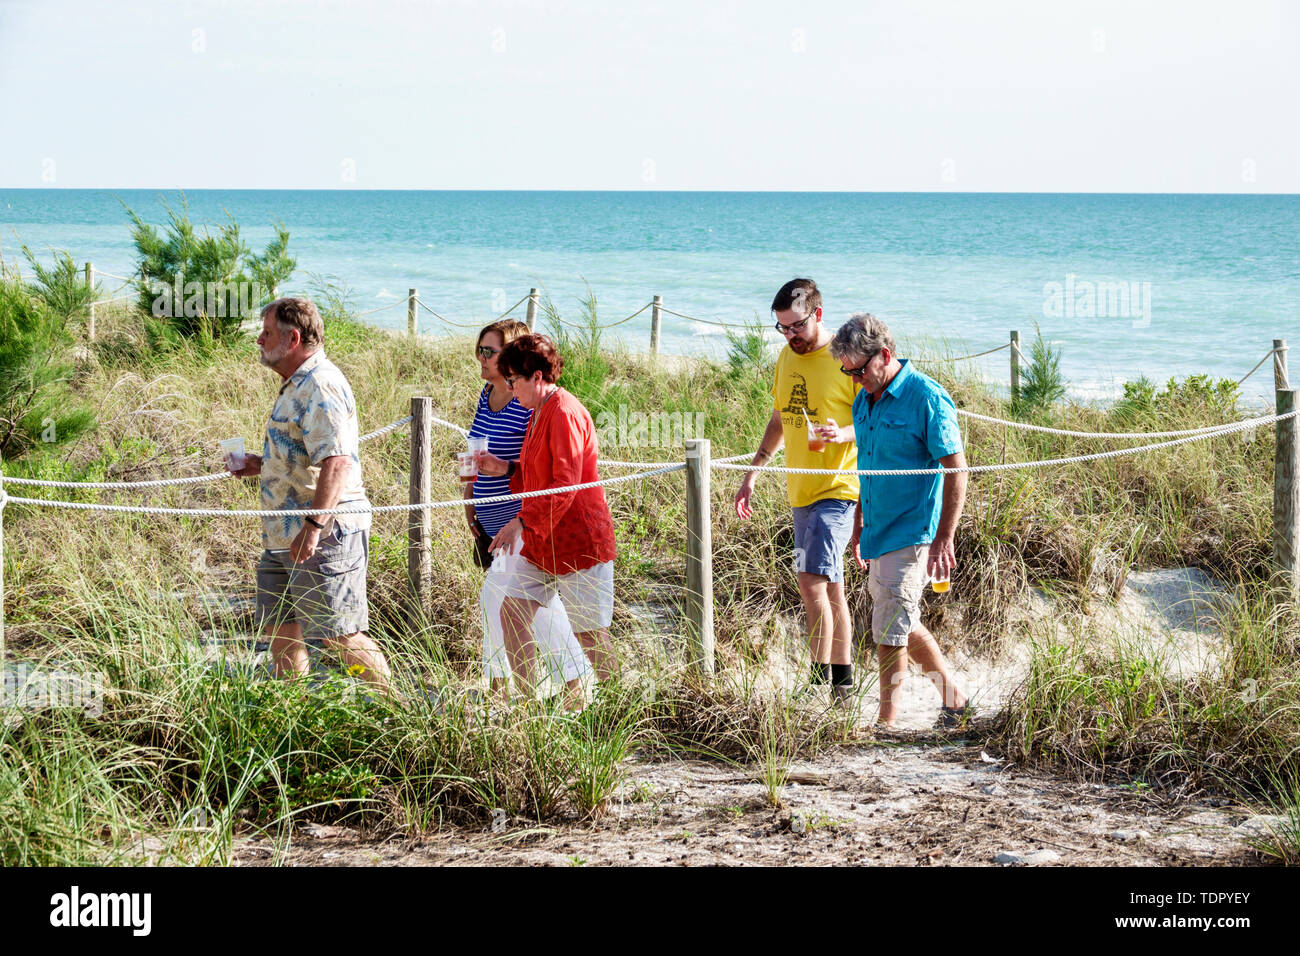 Captiva Island Florida Gulf of Mexico beach access pathway roped sand turquoise water man woman walking carrying drinks cups dune grasses couples friends - Stock Image